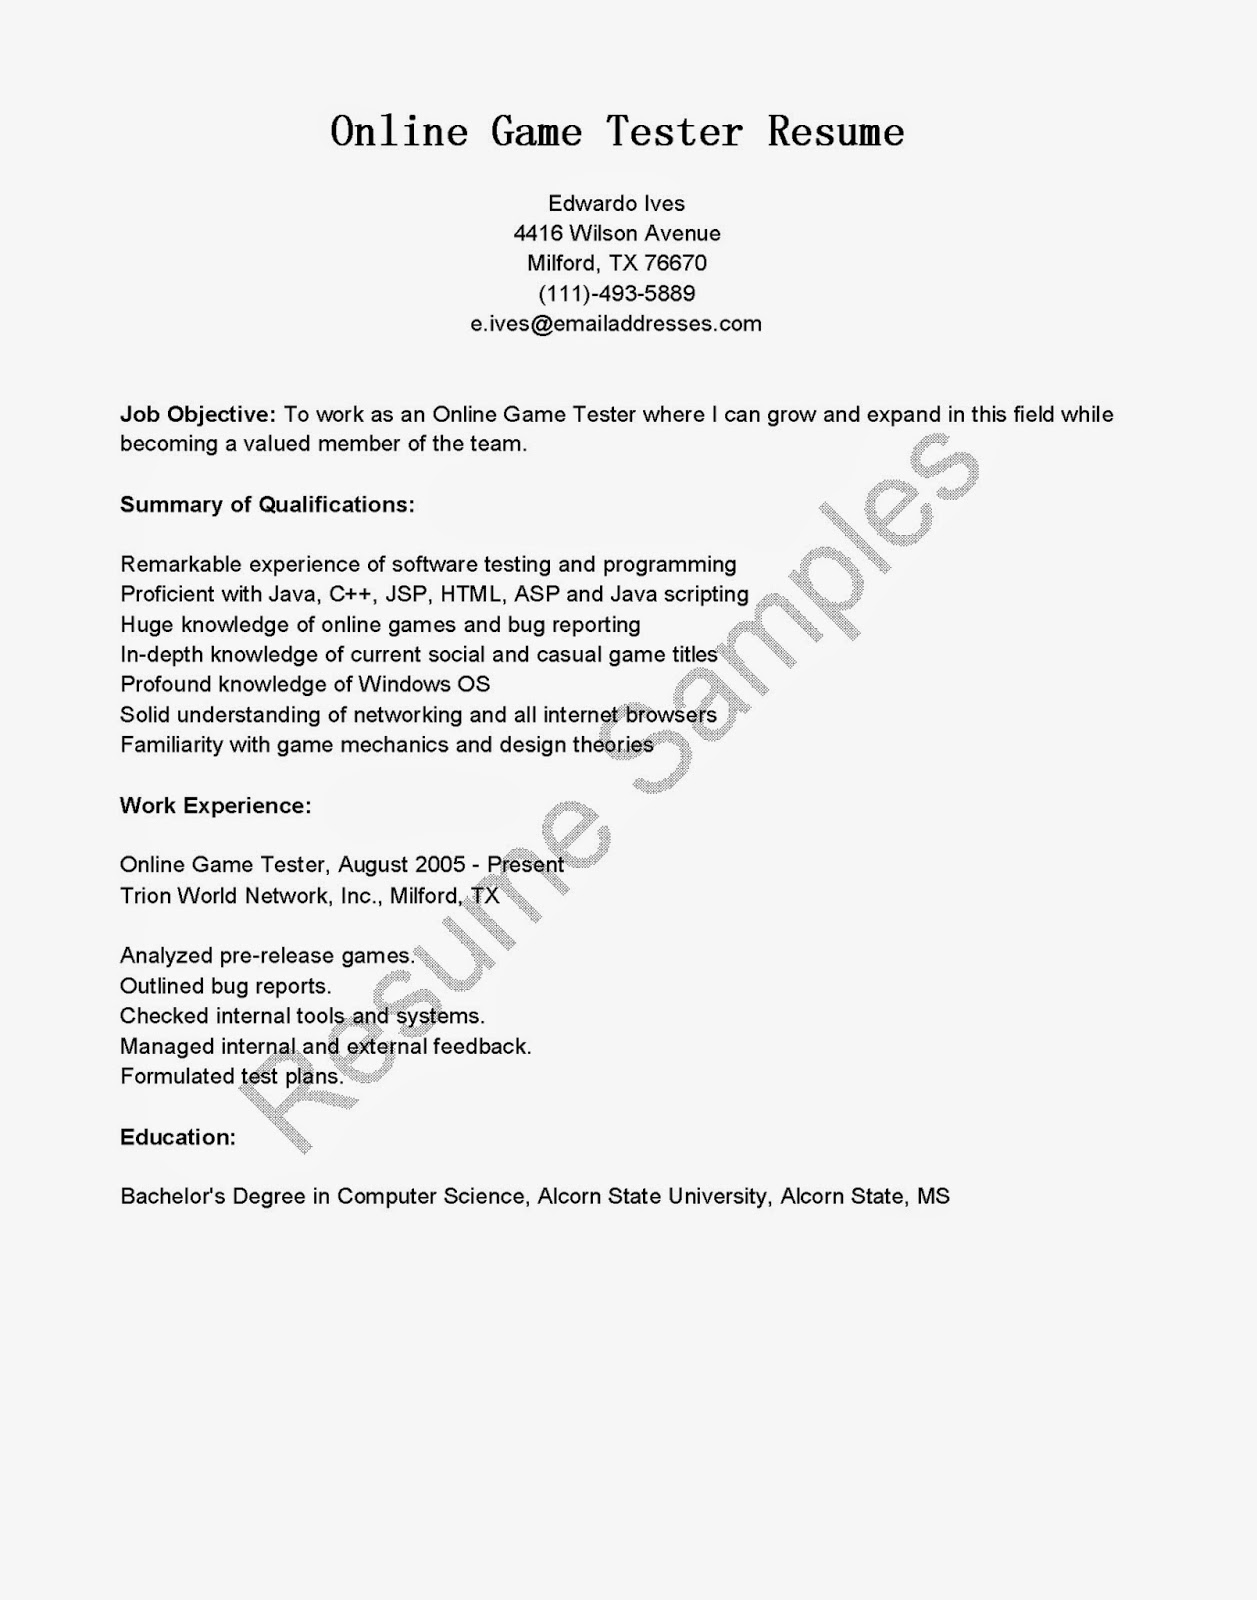 a process essay process analysis essay topics for college students  process analysis essay engineering college essay process analysis essay outline online game tester resume engineering college